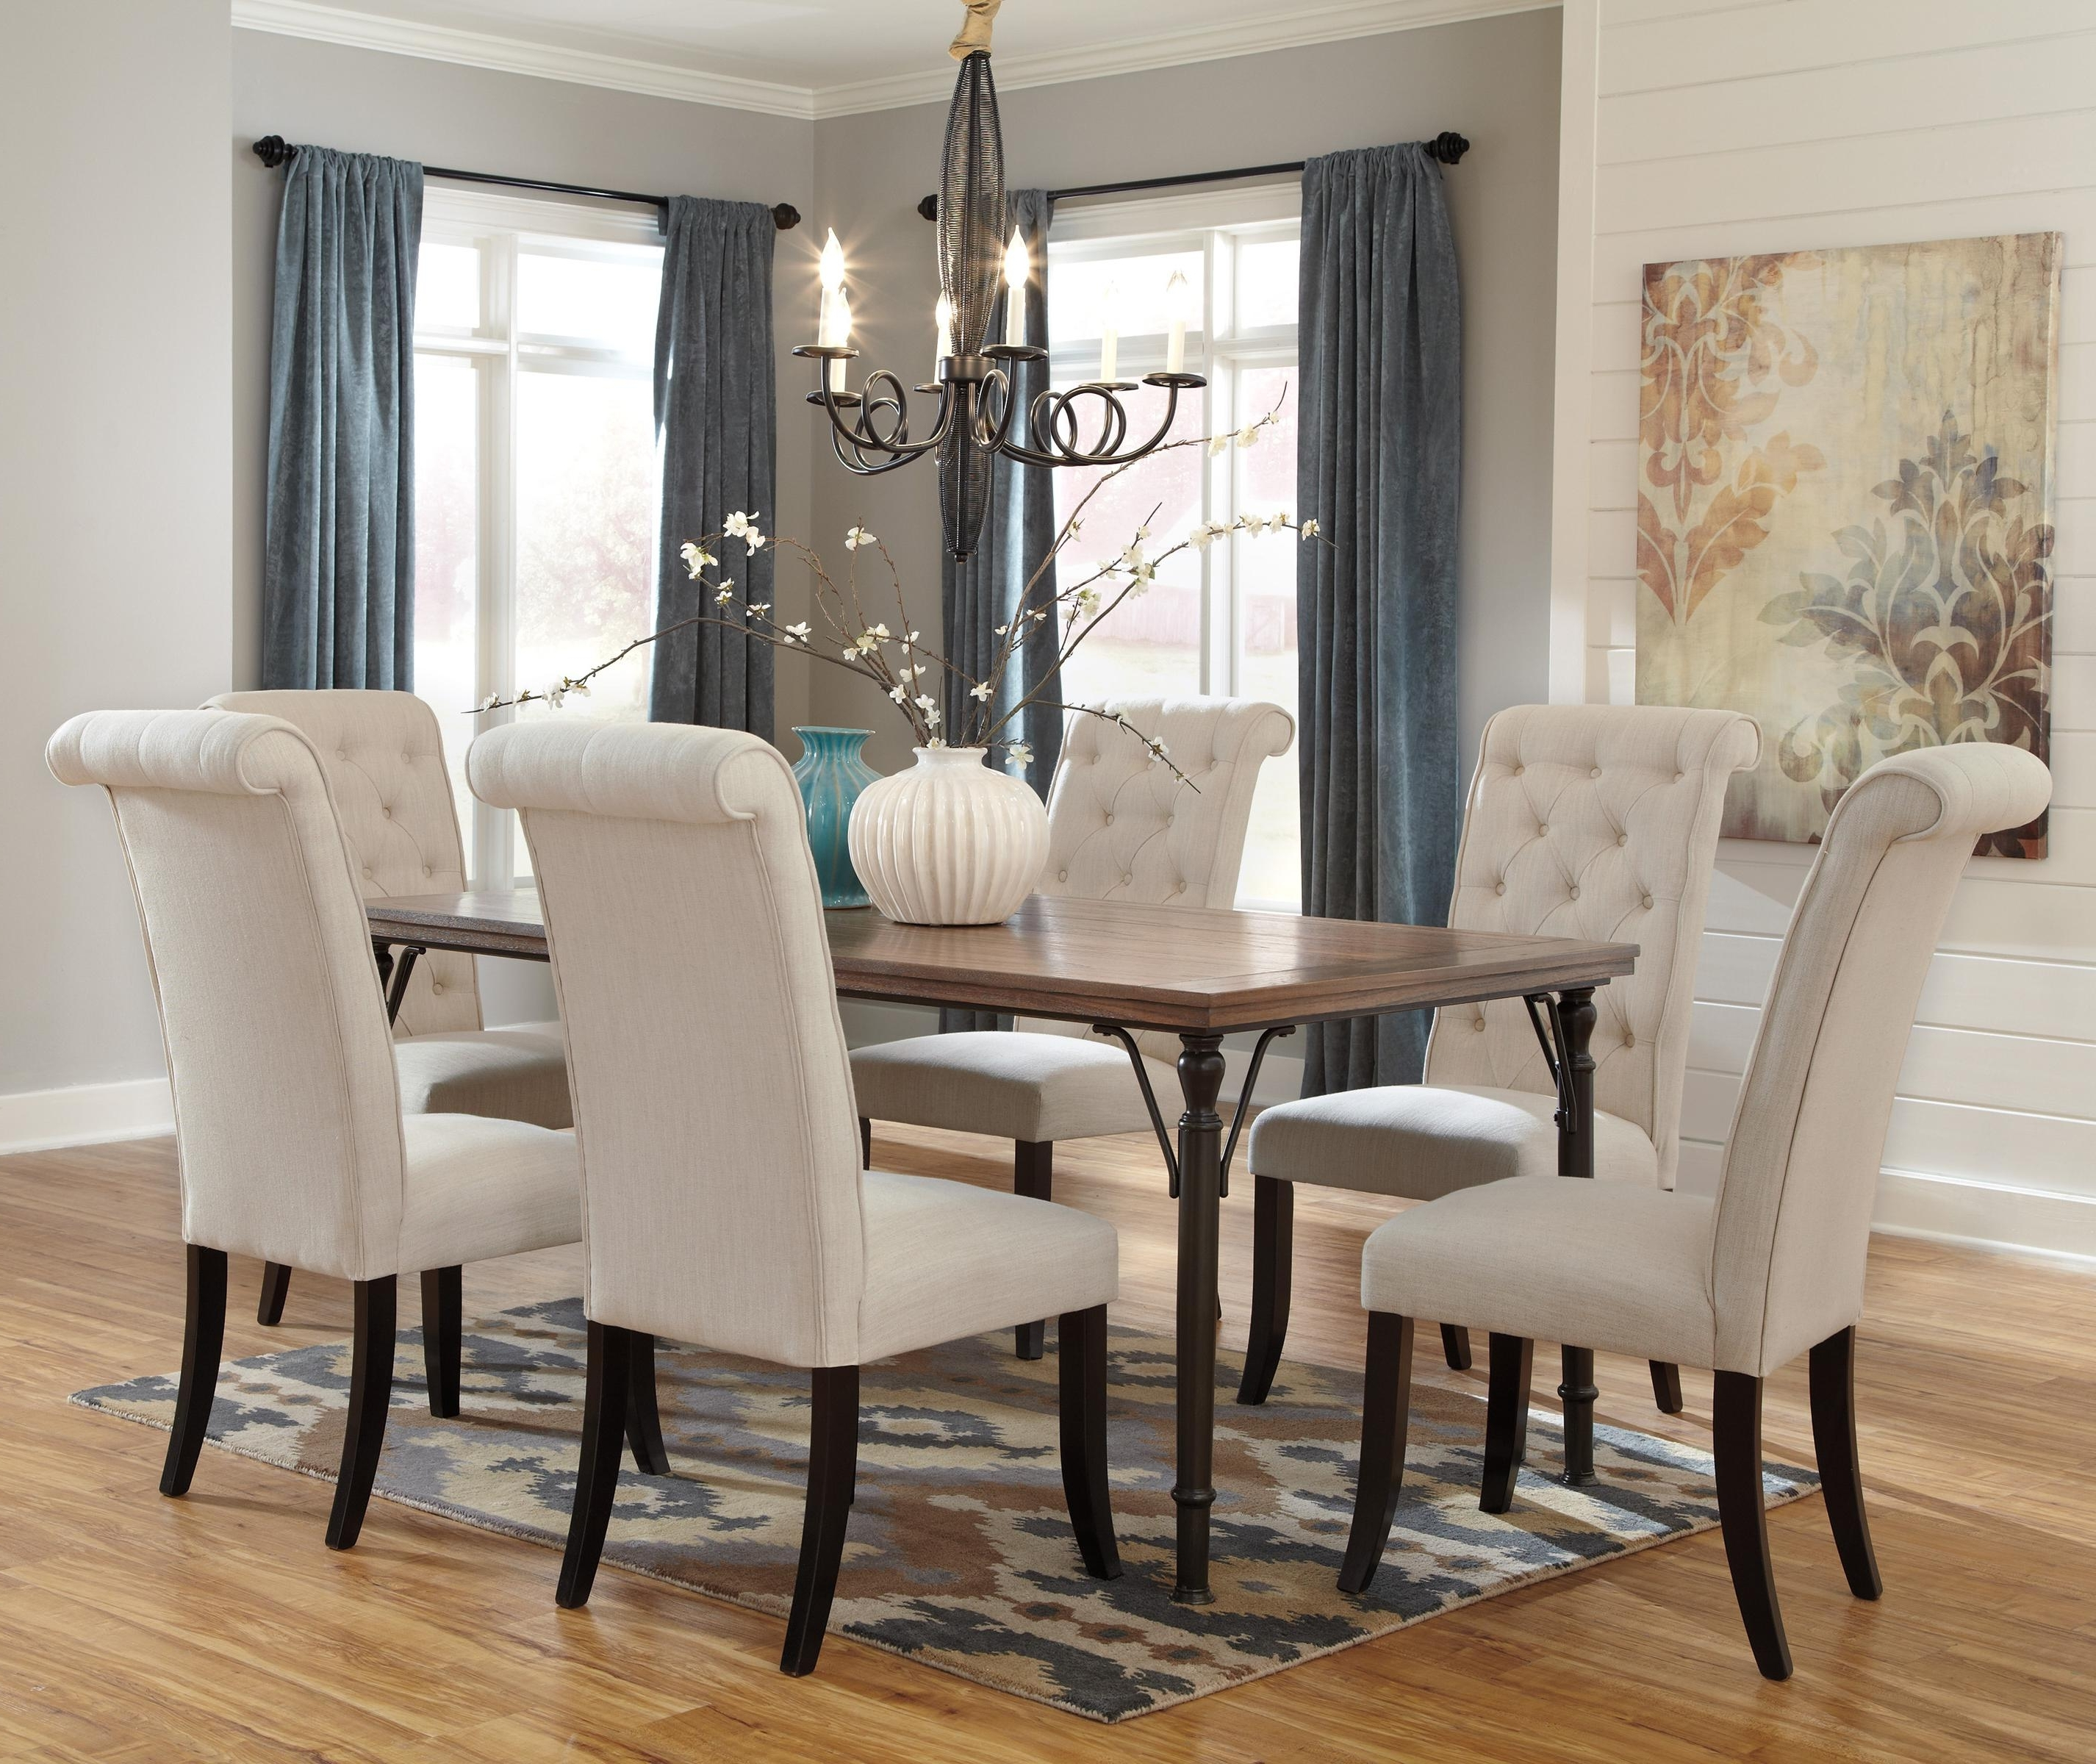 7 Piece Rectangular Dining Room Table Set W/ Wood Top & Metal Legs Intended For Current Parquet 7 Piece Dining Sets (View 15 of 25)